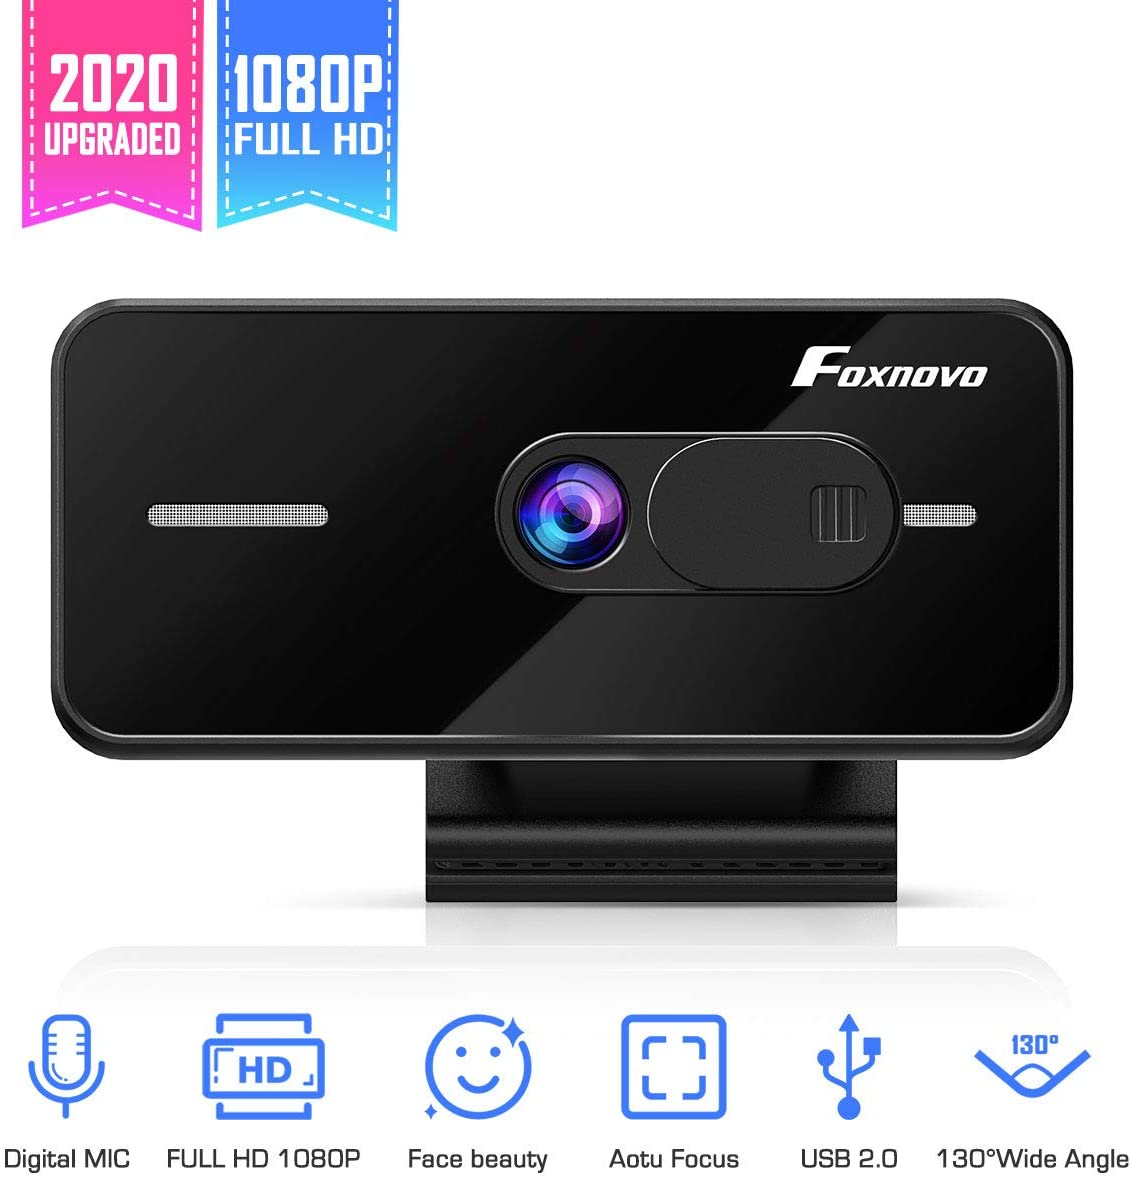 Foxnovo 1080P Webcam Auto Focus with Dual Microphones, 130° Wide View Angle Streaming Computer Web Camera with Facial-Enhancement Technology, USB PC Webcam for Video Calling Recording Conferencing